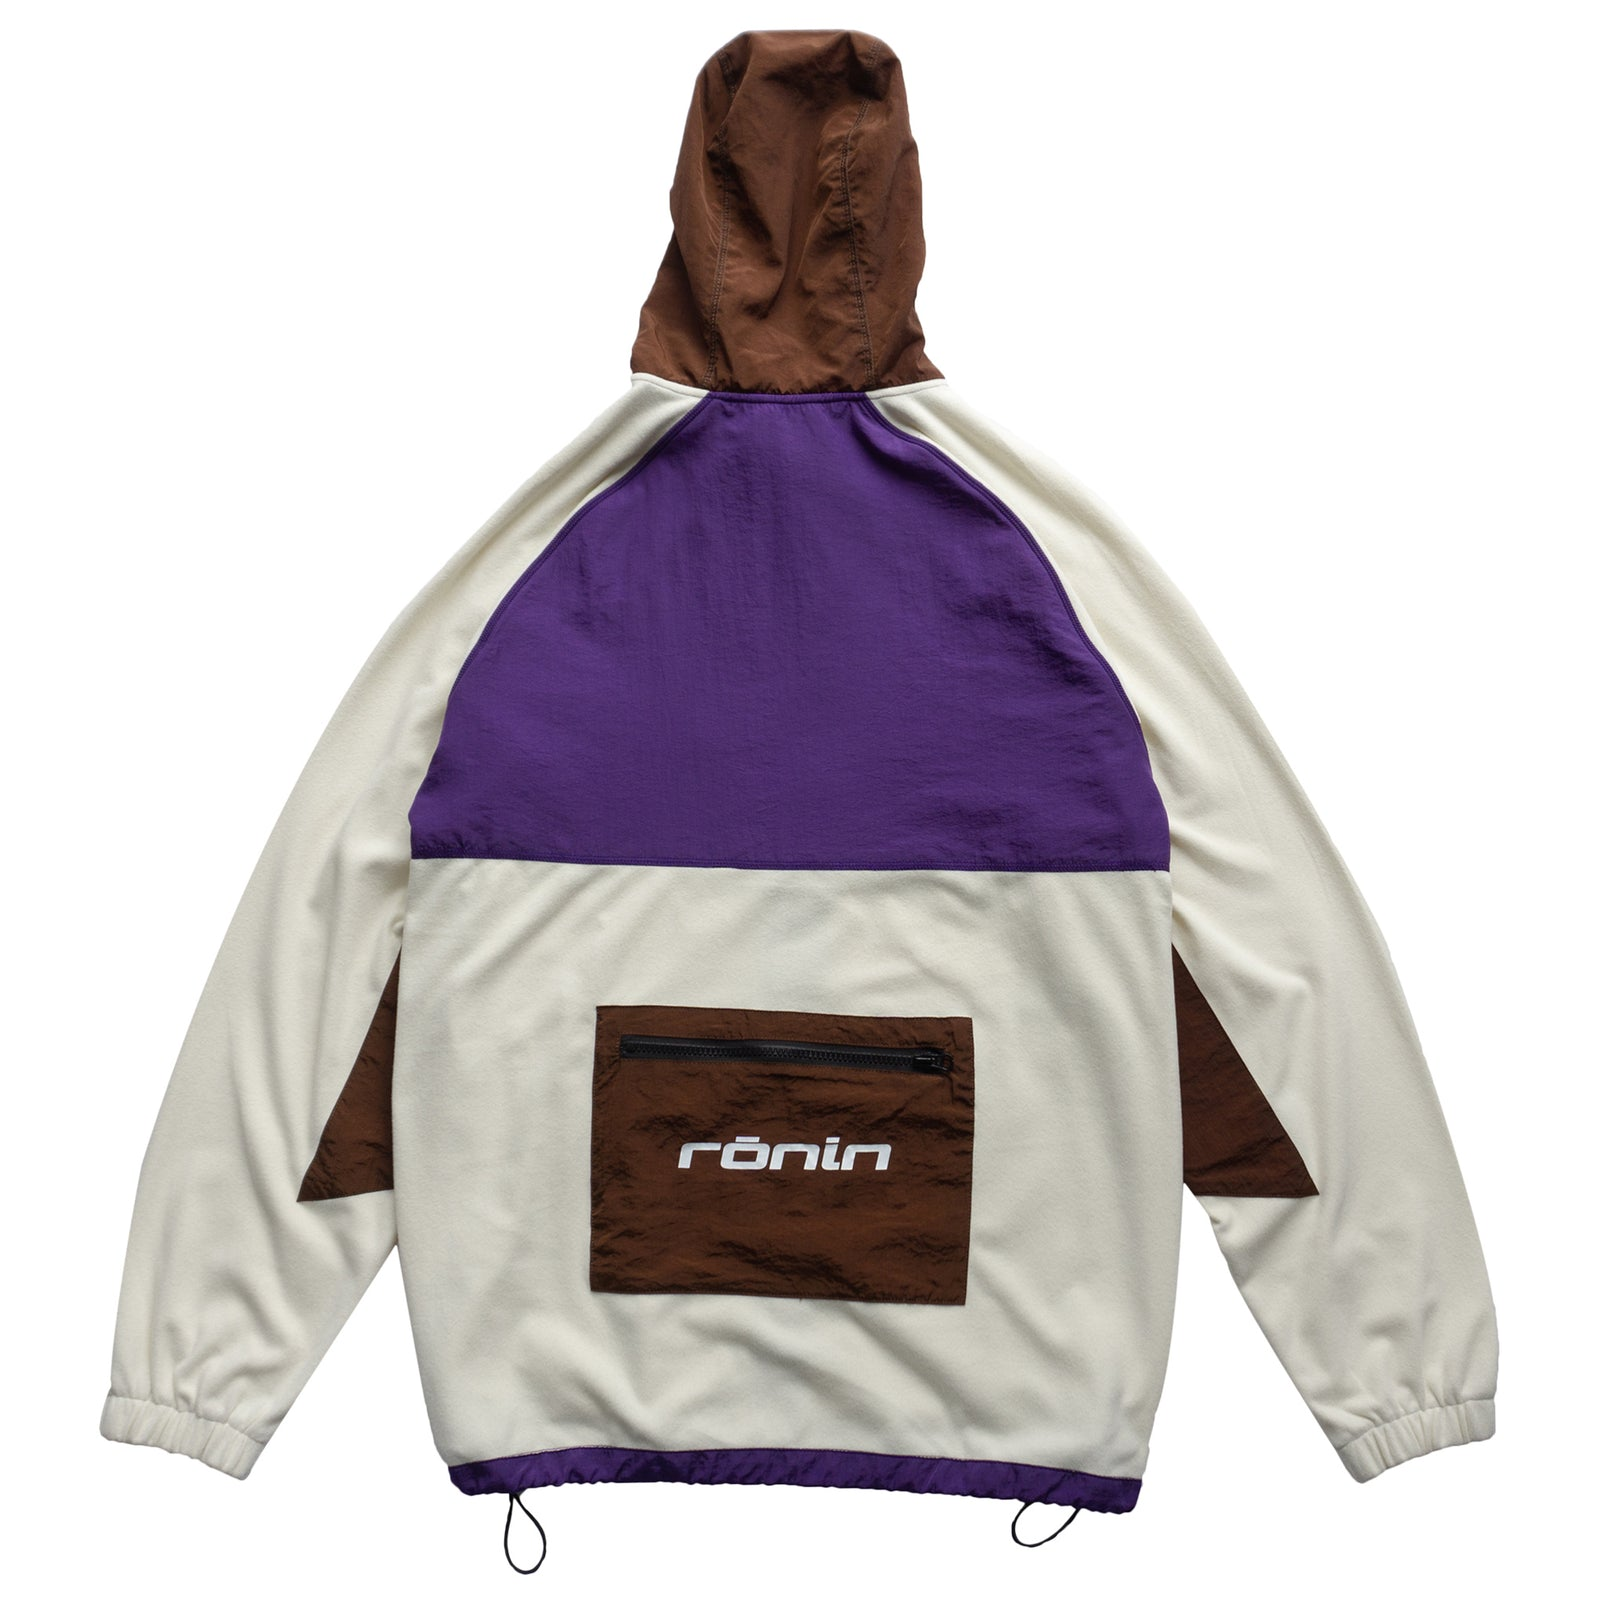 Polar Fleece Jacket - Cream